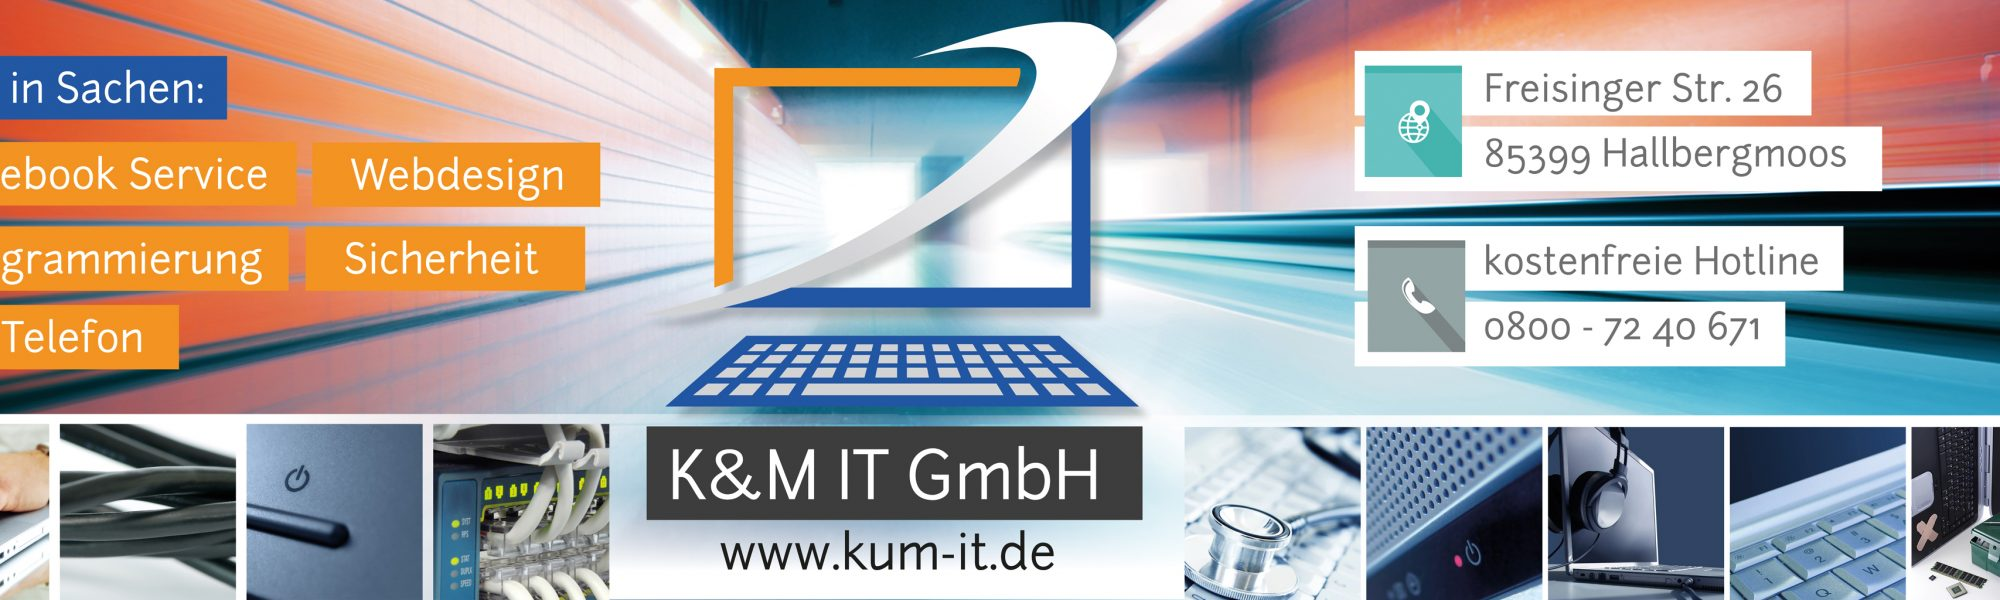 K&M IT GmbH